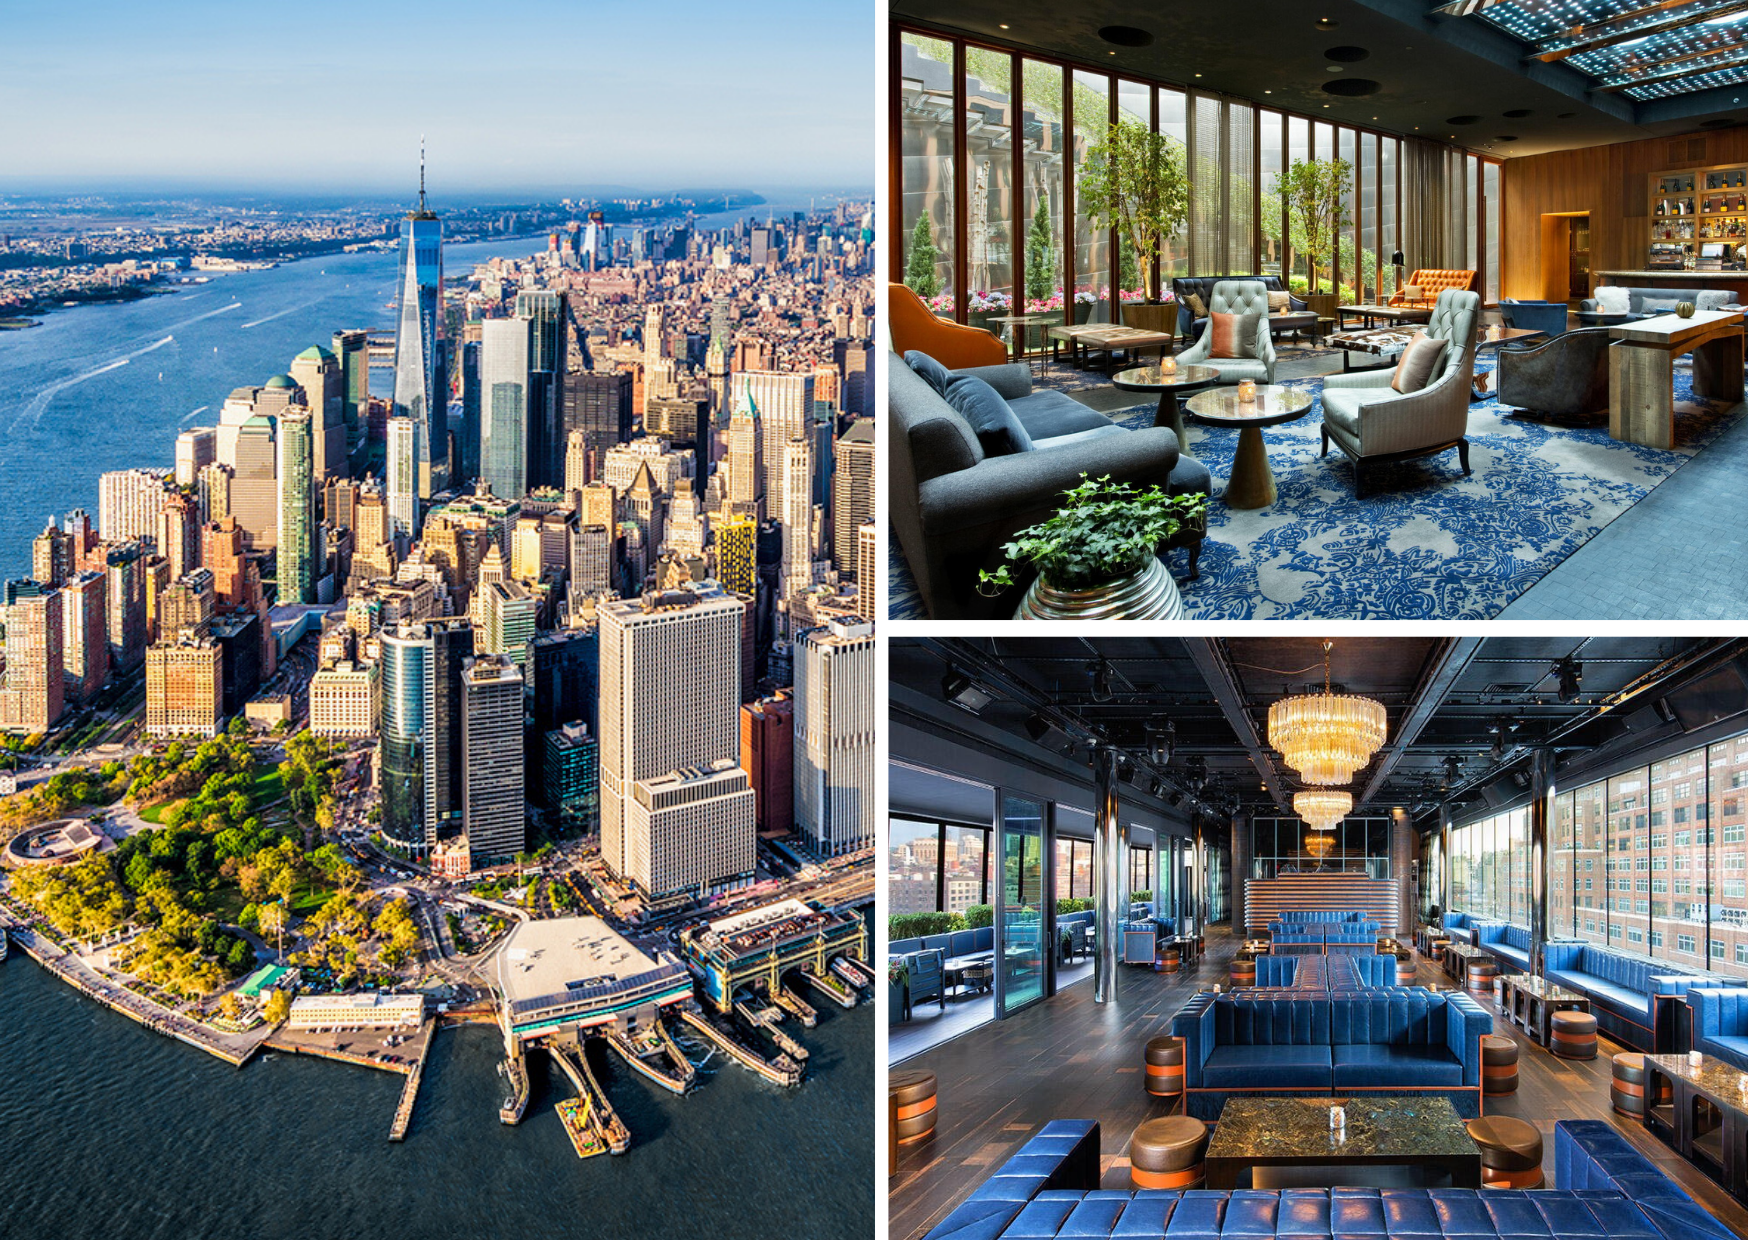 Win an amazing 3 night trip for two to New York City!